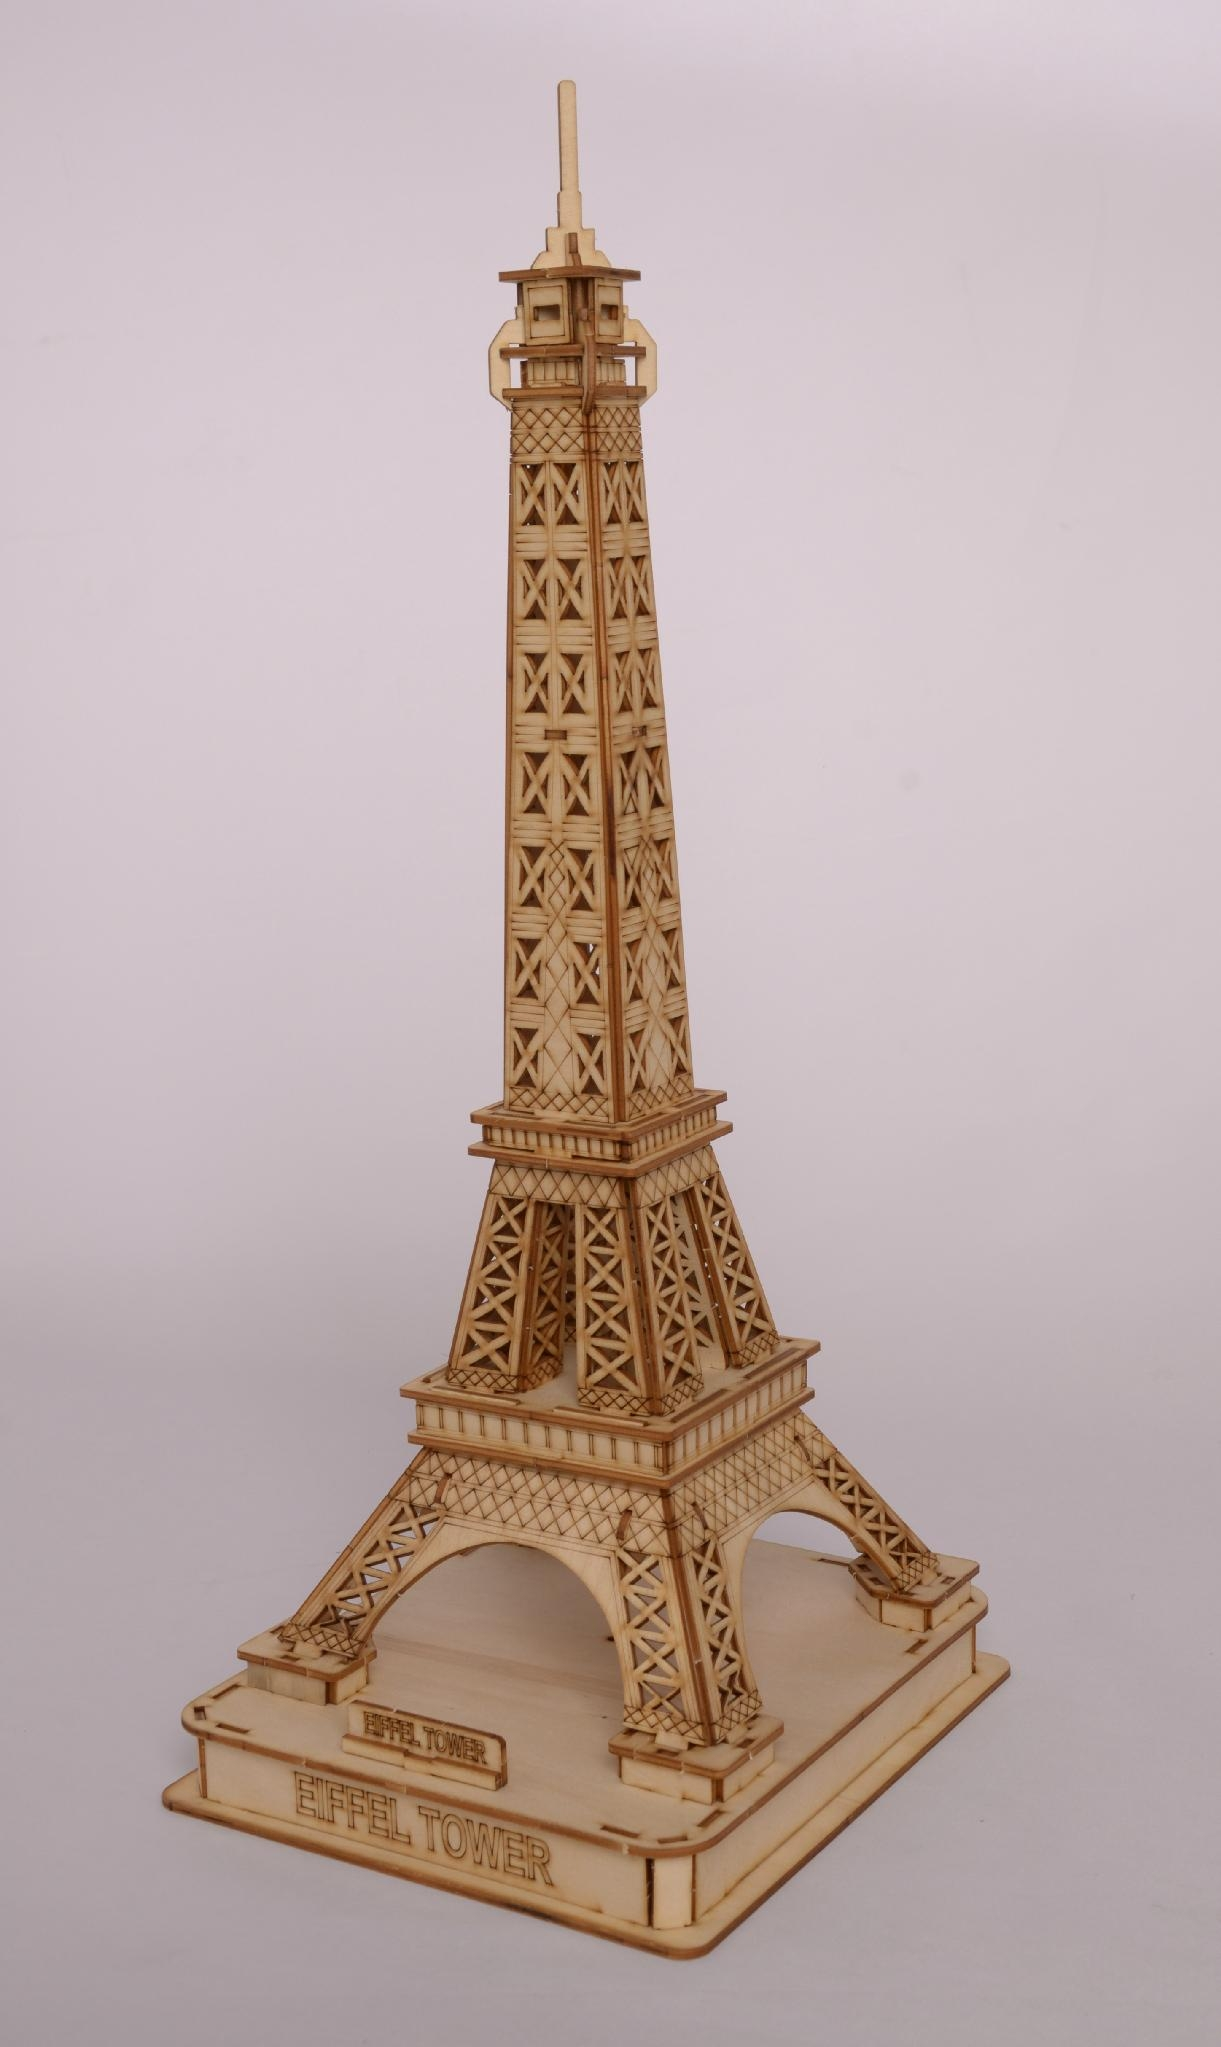 Eiffel tower world architecture plan toy   wooden model 4